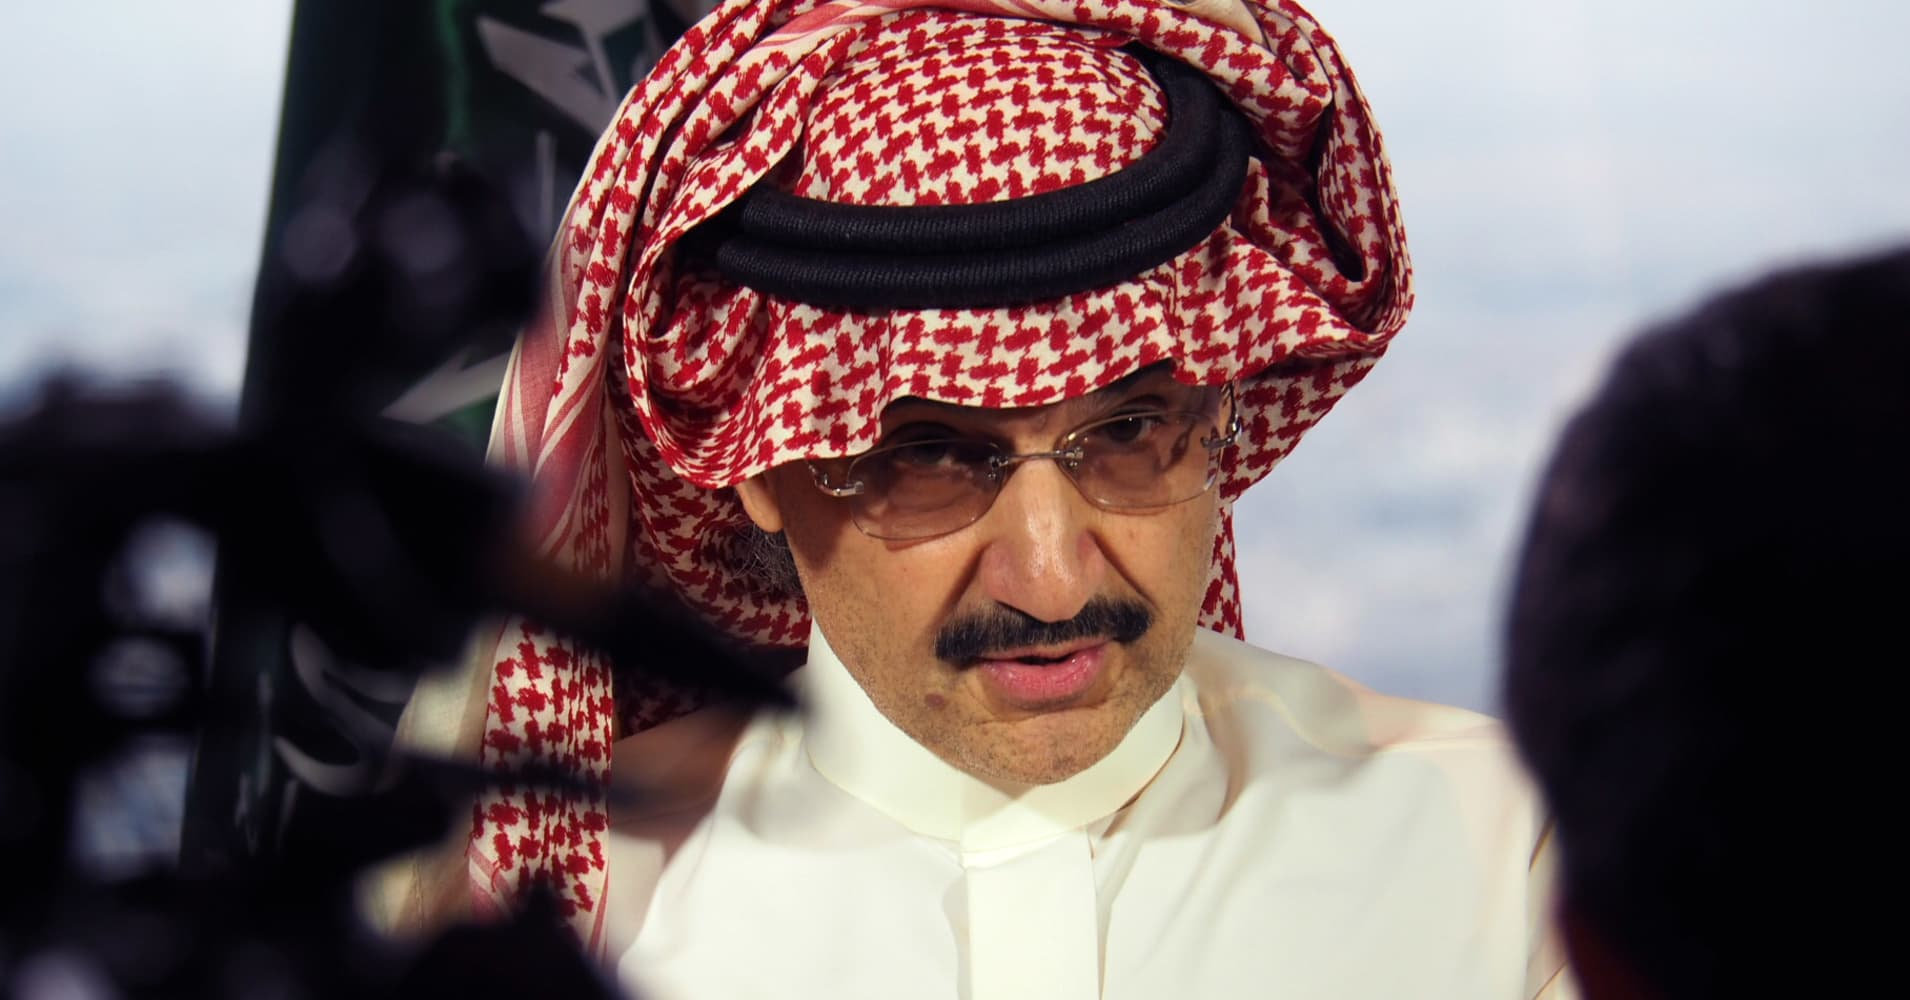 Billionaire Saudi Prince Alwaleed Bin Talal arrested in corruption crackdown: Reports